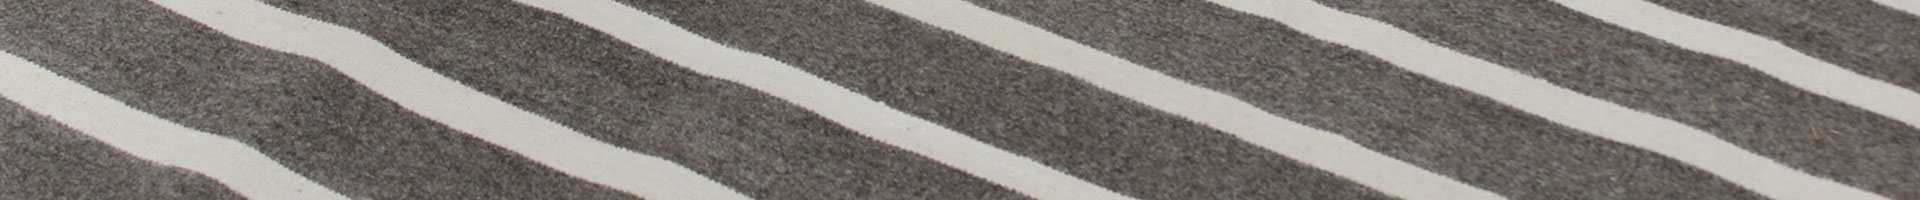 Striped special carpets with special colors